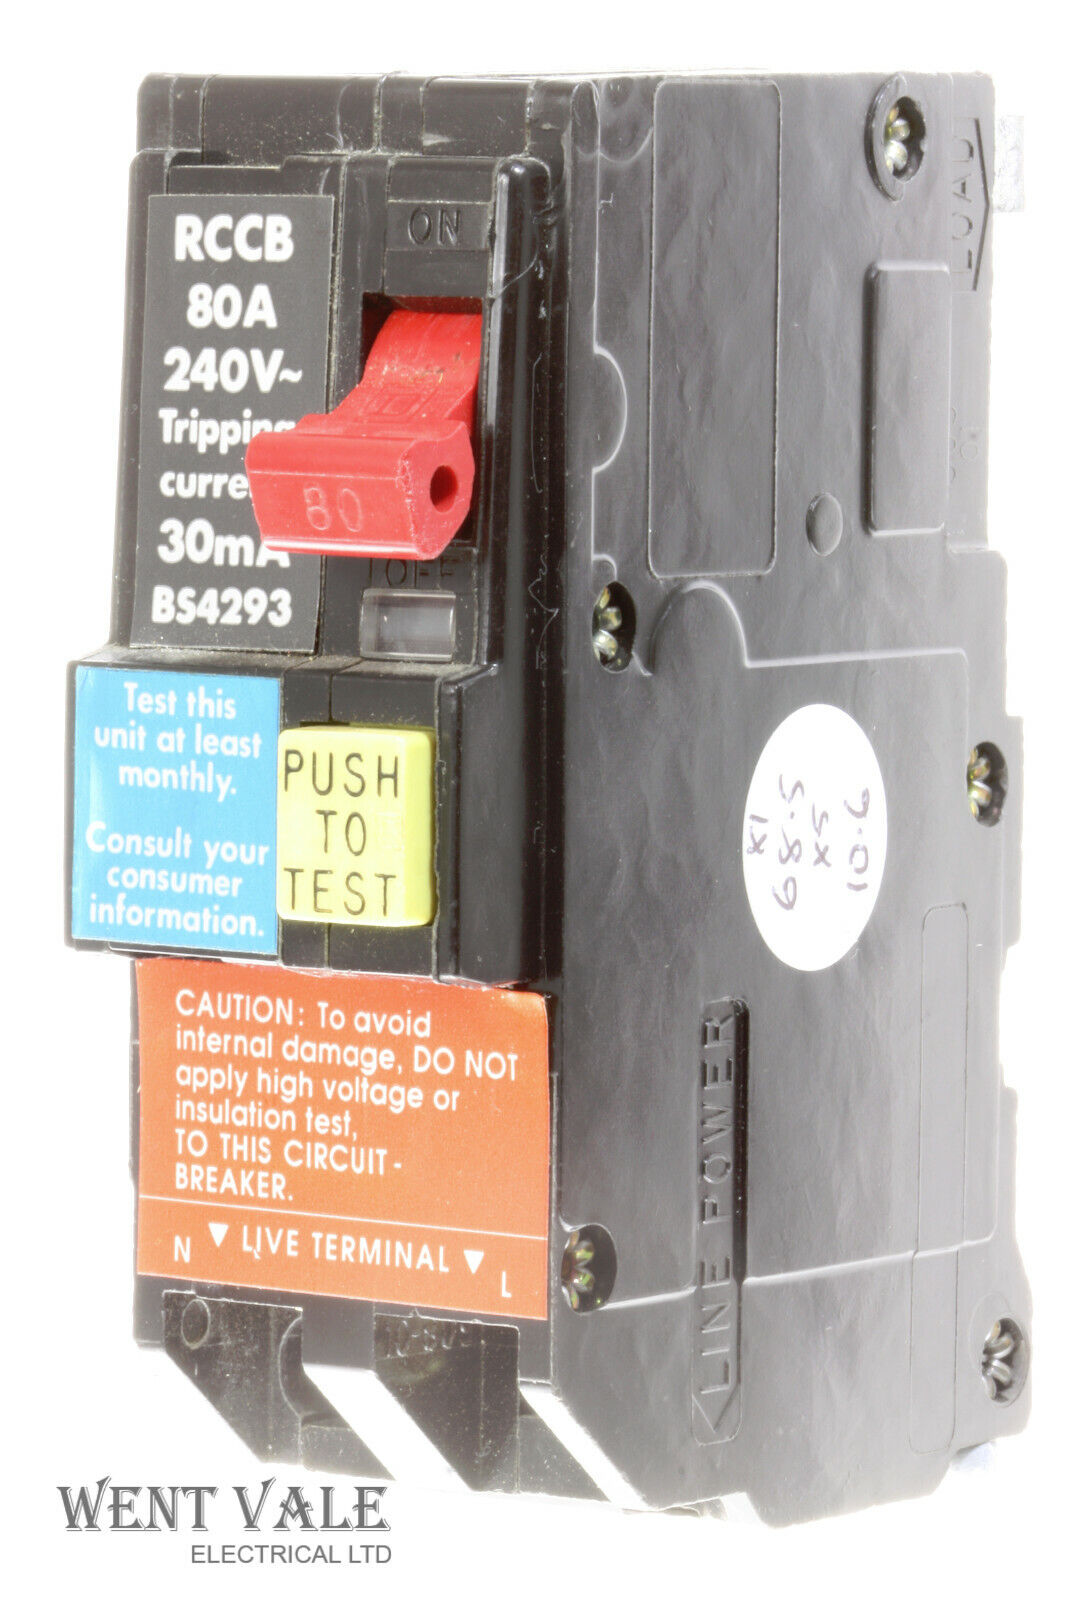 Square D Qwik-Guard - QO2OORCDX30 - 80a 30mA Double Pole Main Incoming RCCB Used